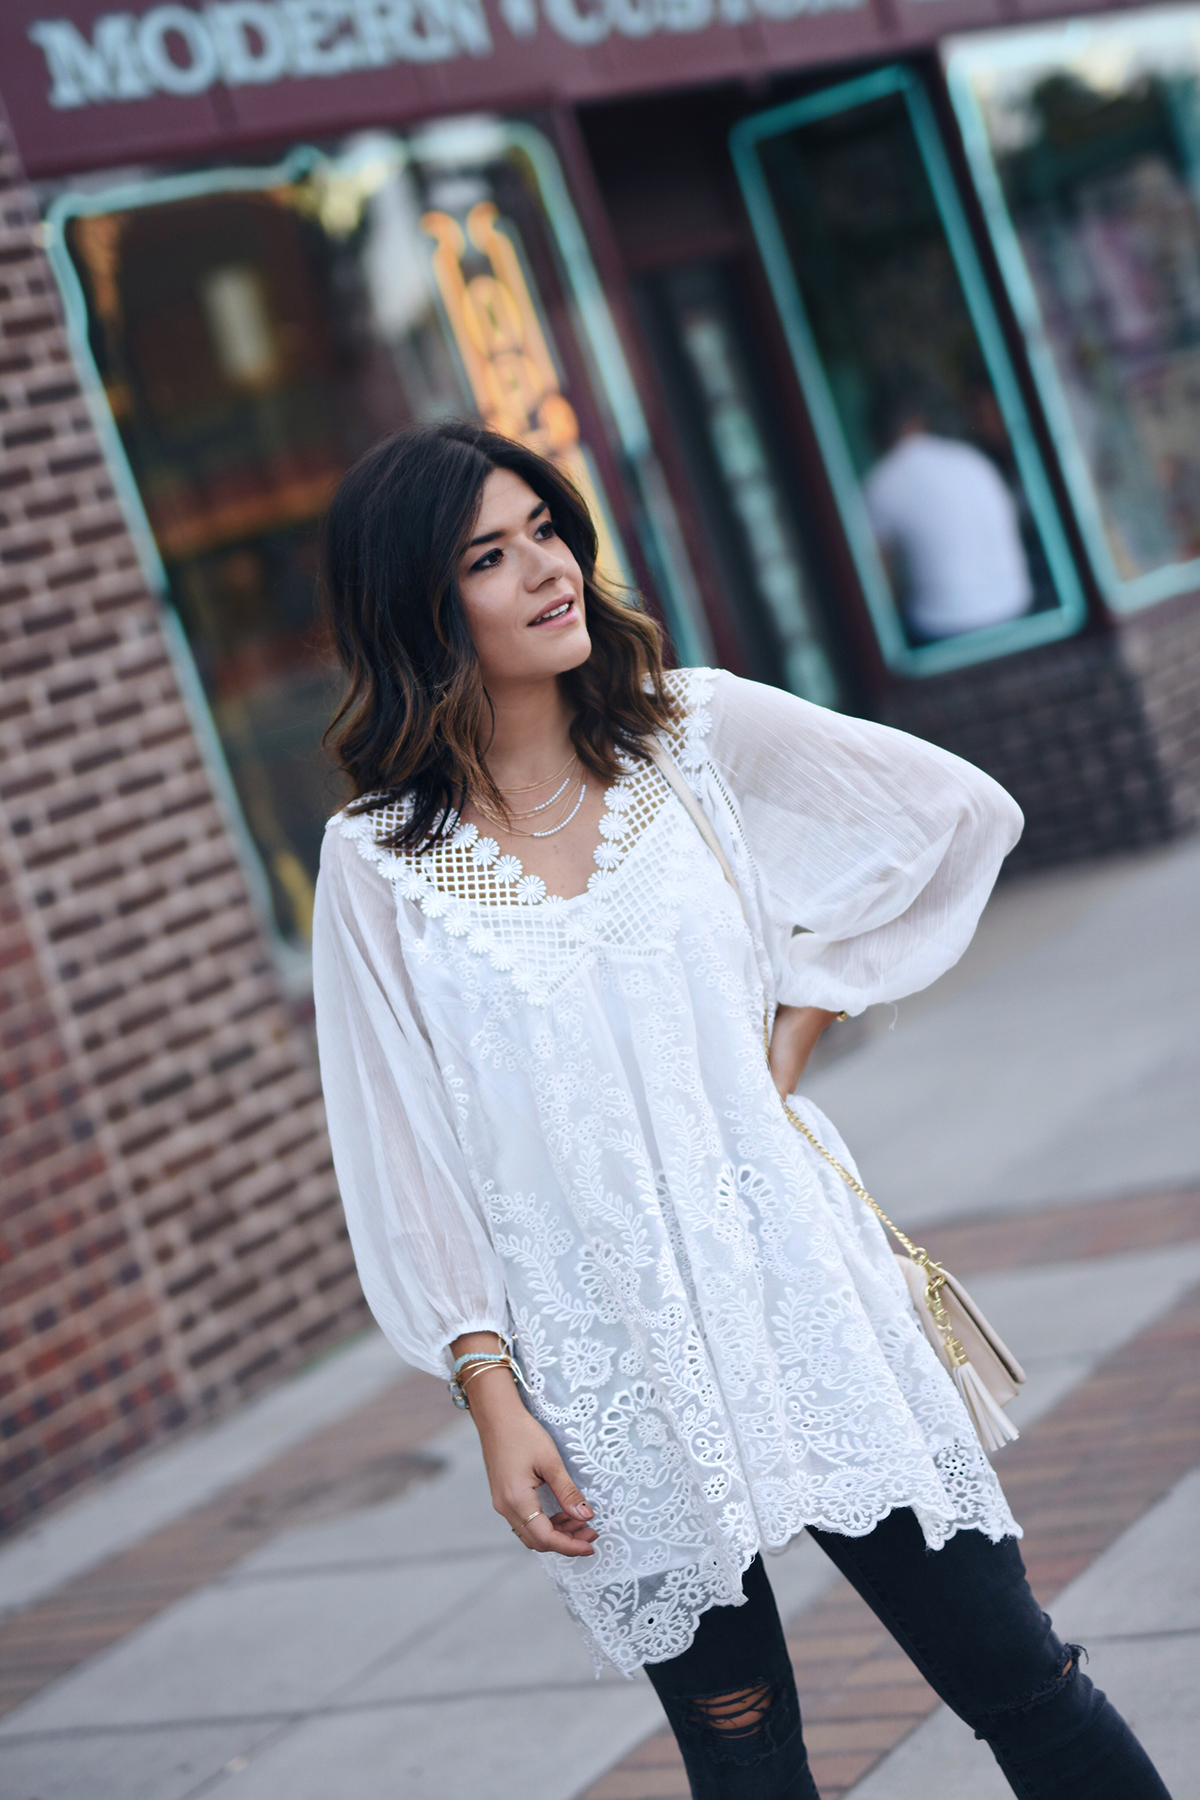 Carolina Hellal of Chic Talk wearing a Chicwish white tunic, Charming Charlie clutch, Madewell jeans and criss cross mules